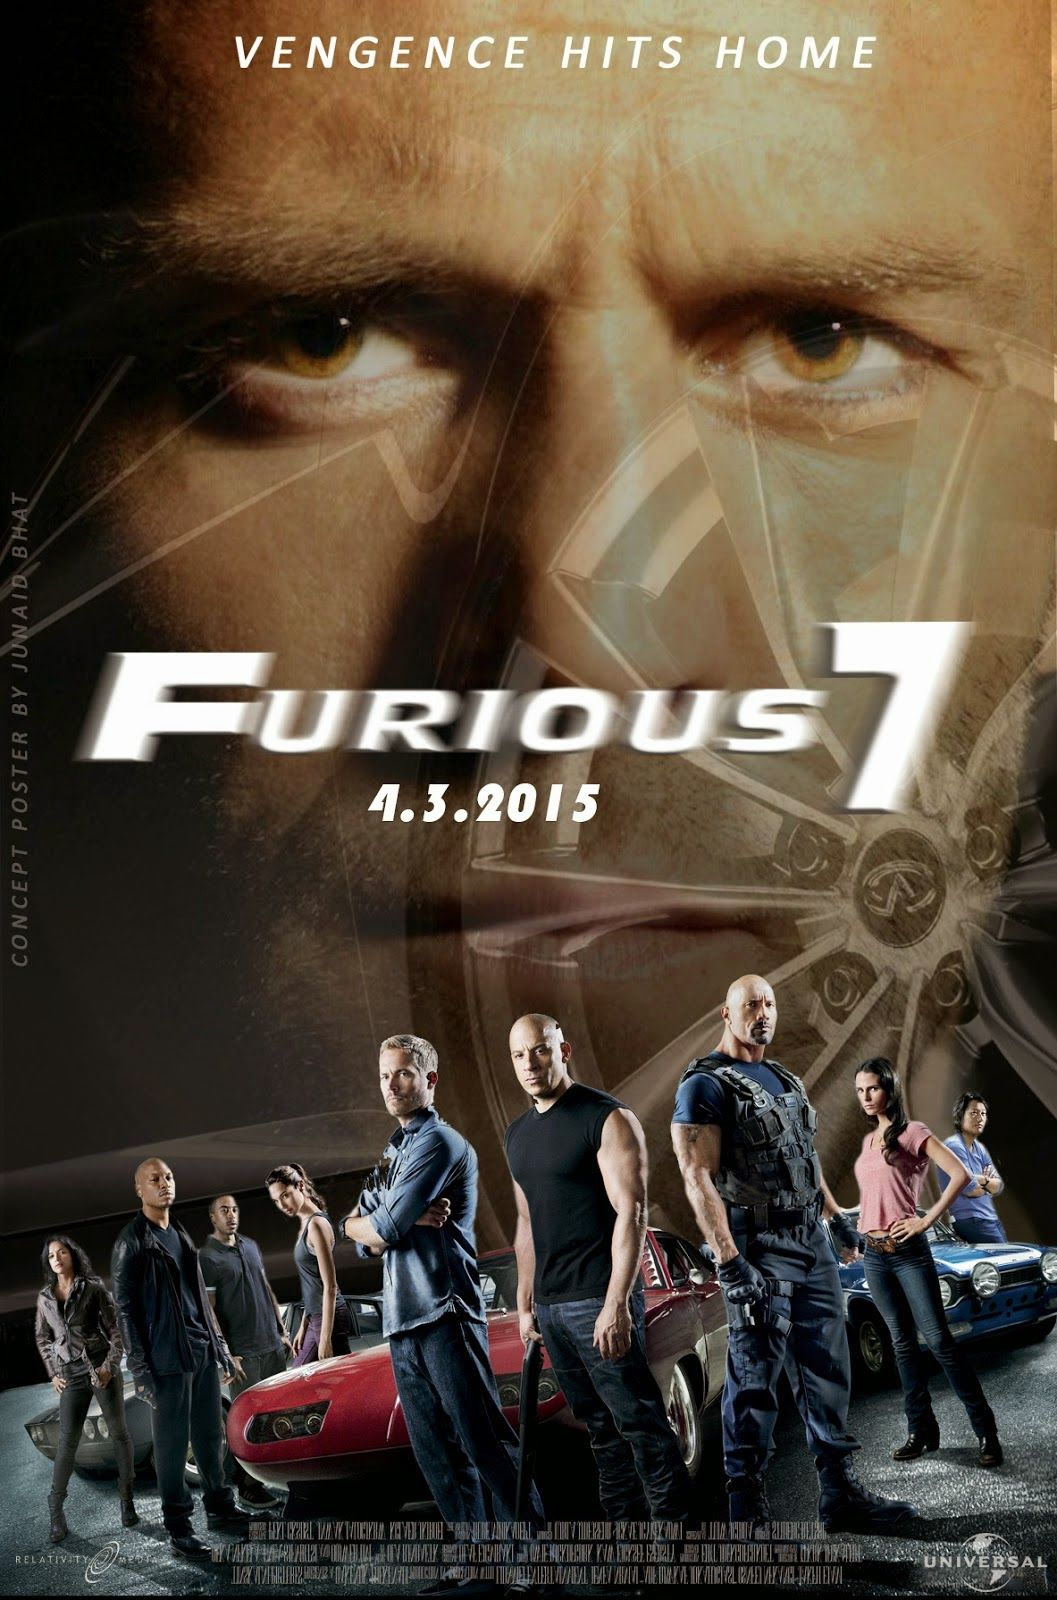 Fast and furious 7 (2015) hindi dubbed watch & download 400mb.